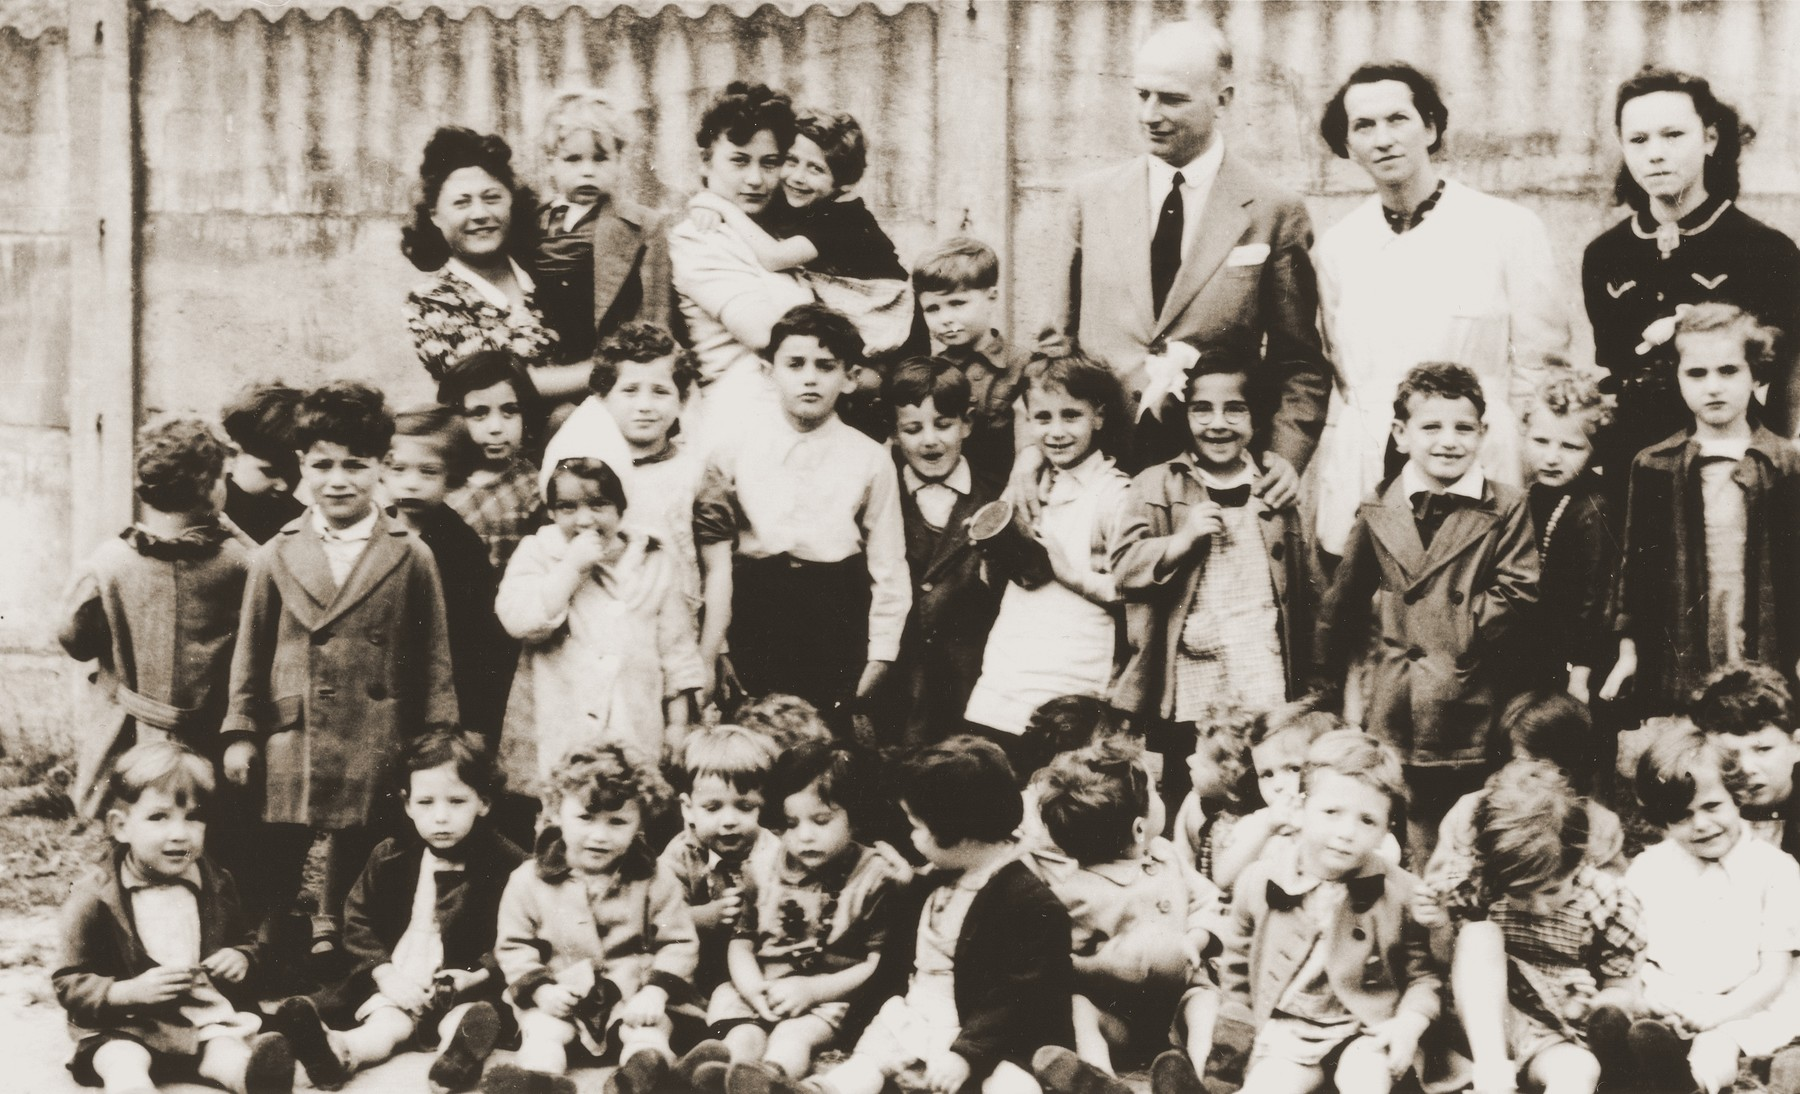 Group portrait of children and staff at the La Pouponniere children's home in Uccle.